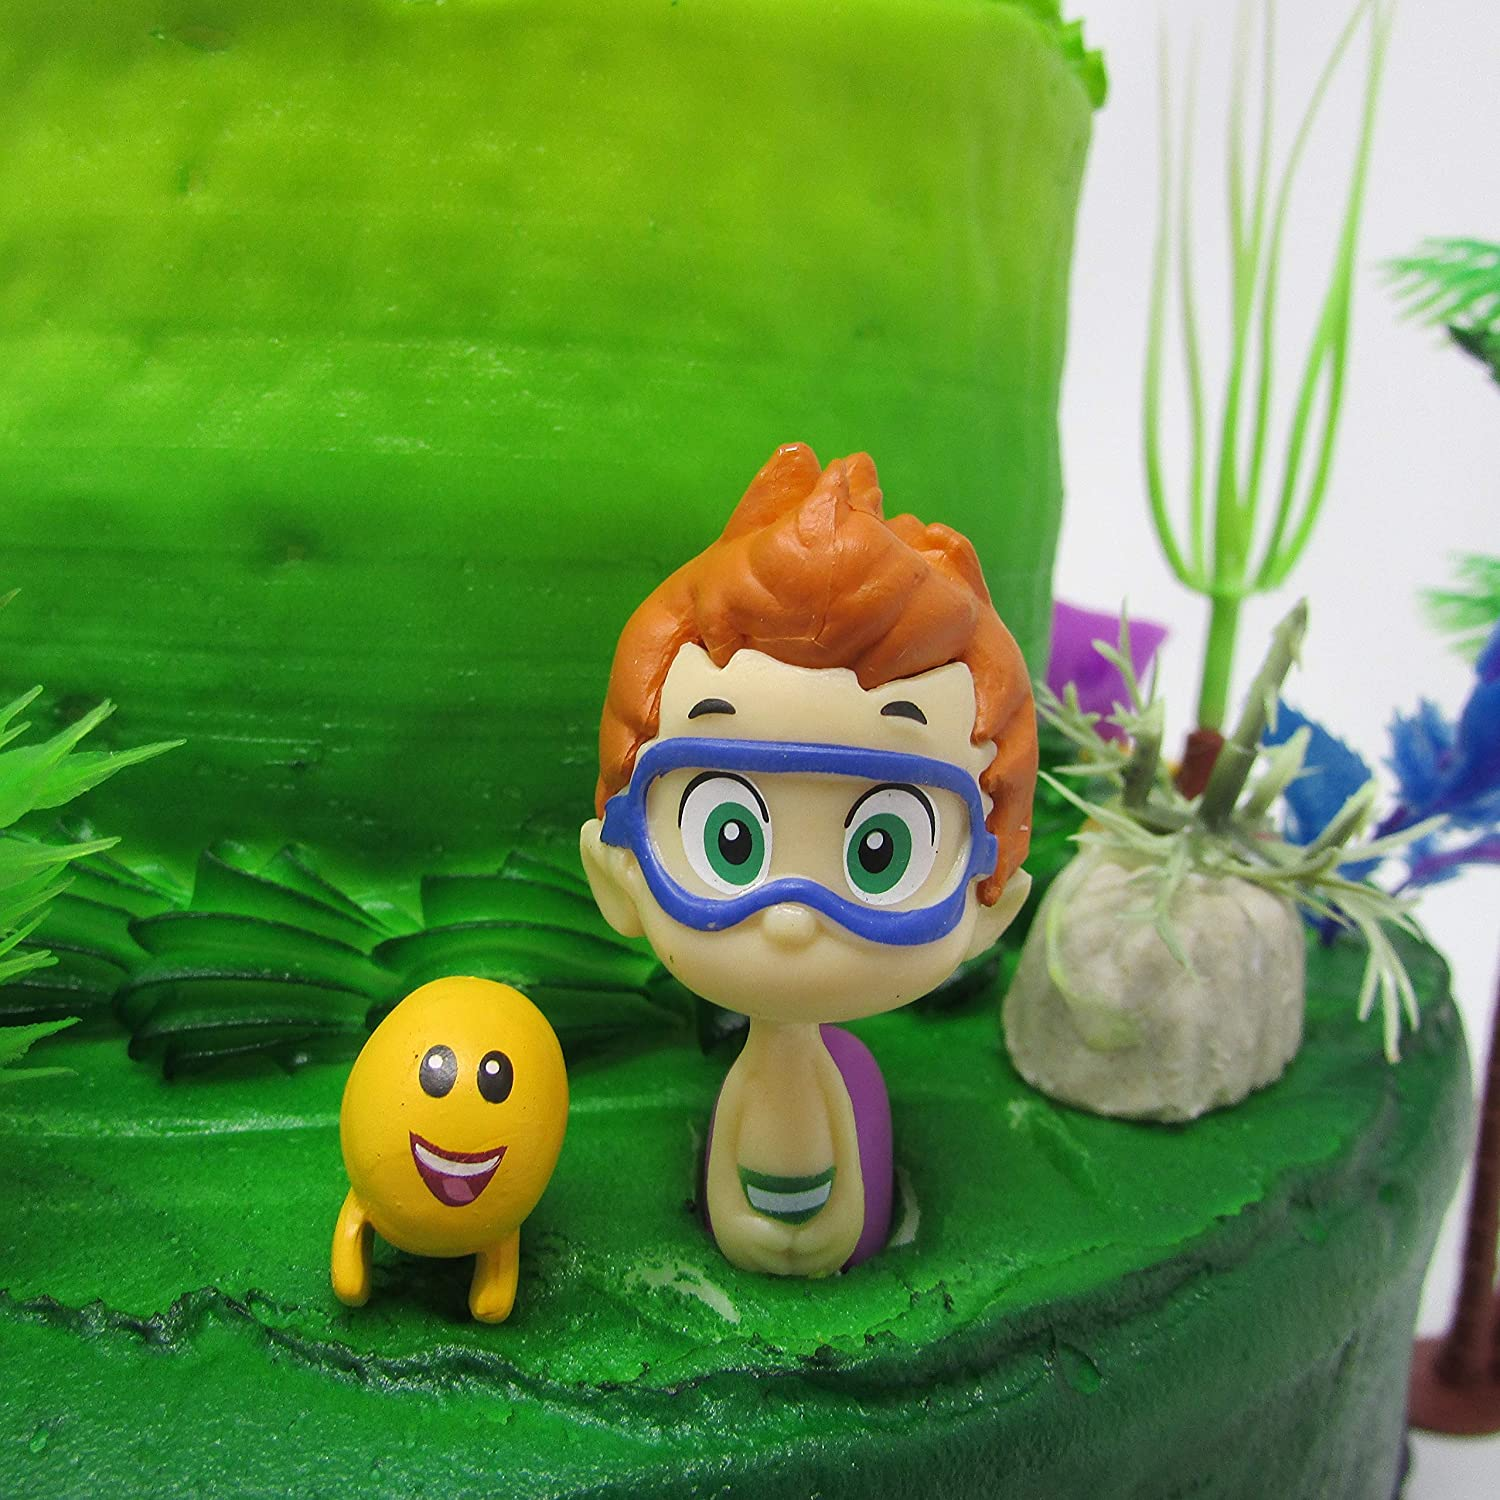 Bubble Guppies Birthday Cake Topper Set Featuring Figures and Decorative Themed Accessories